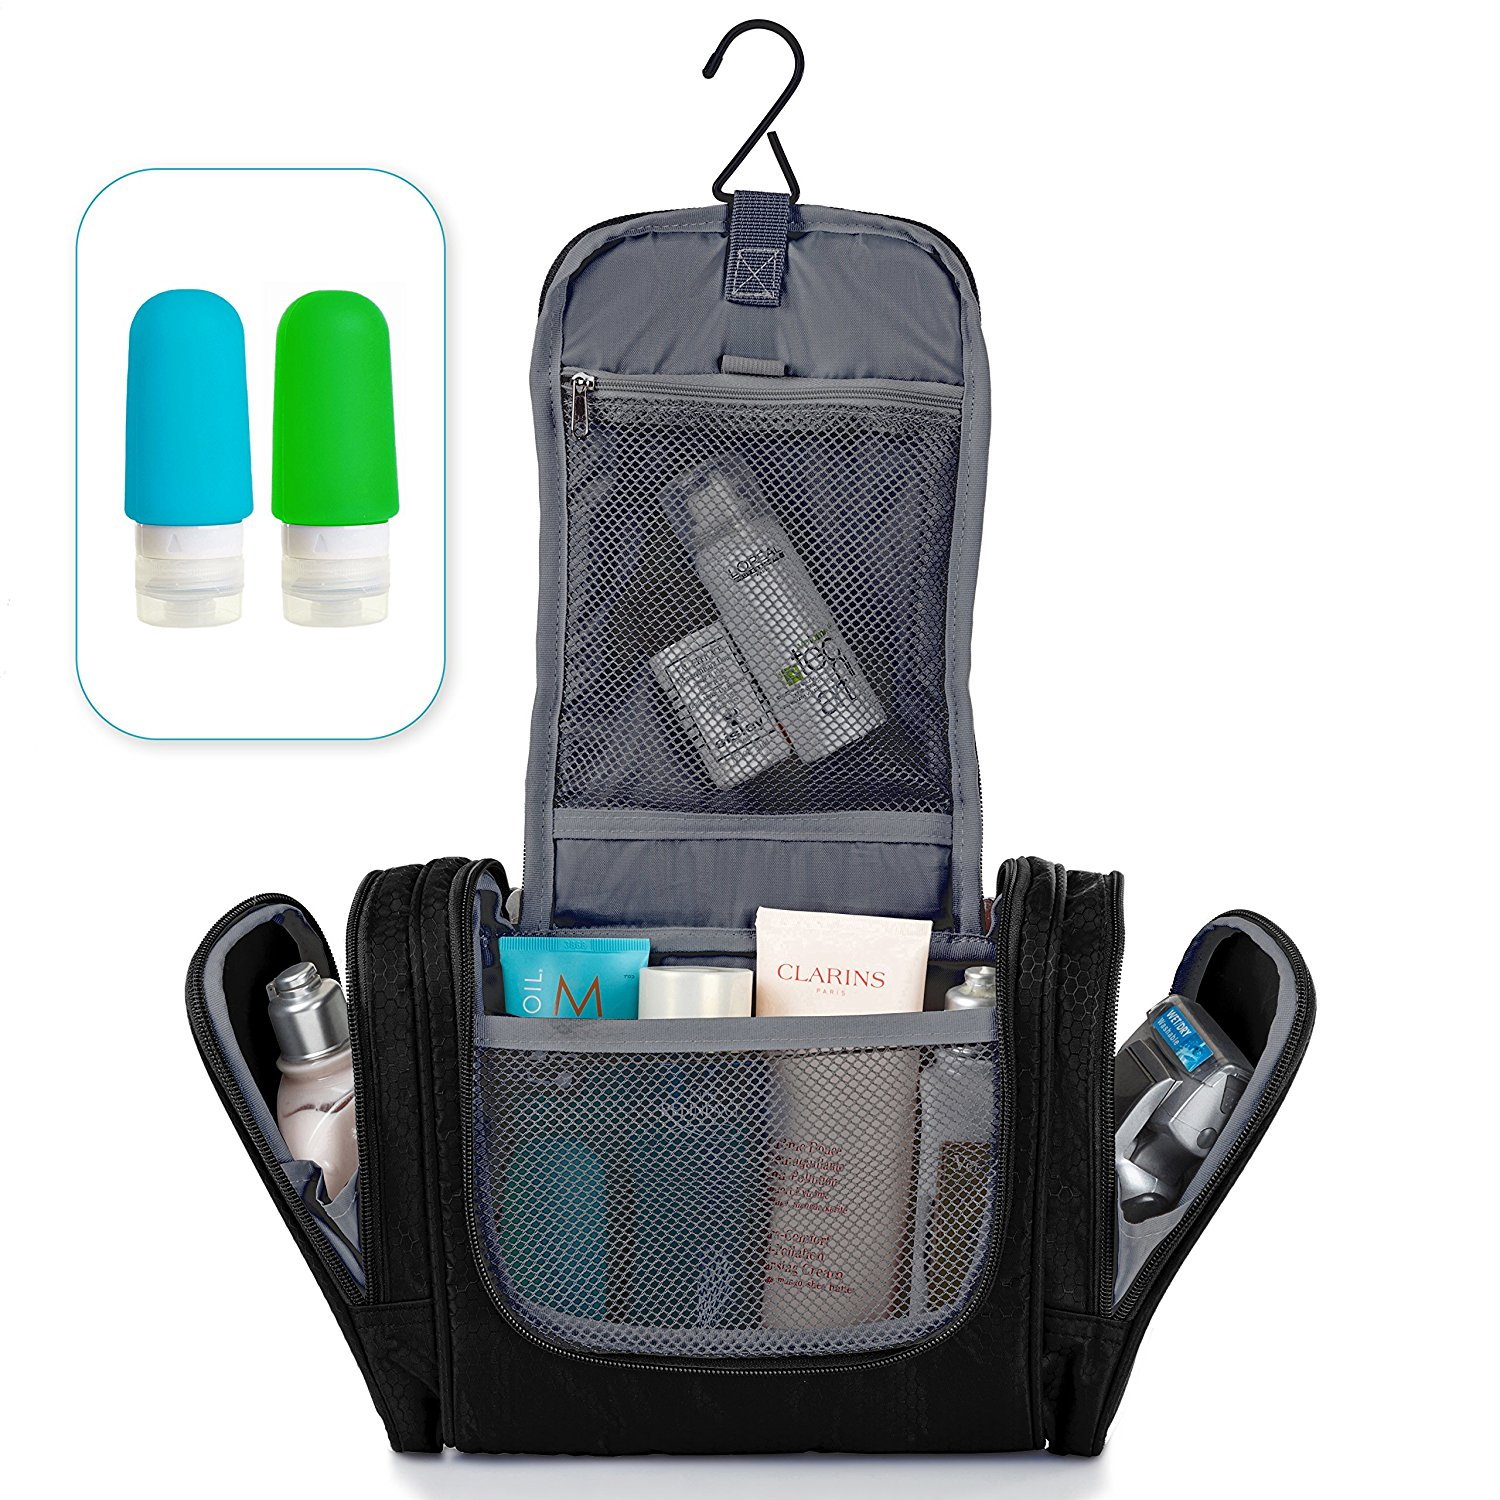 Hanging Toiletry Bag - Travel Organizer - Toiletry Kit - Shower Bag - Bathroom bag for Toiletries - Large Traveling Cosmetic Makeup bag for Men and Women - With Travel Bottles Set - Black